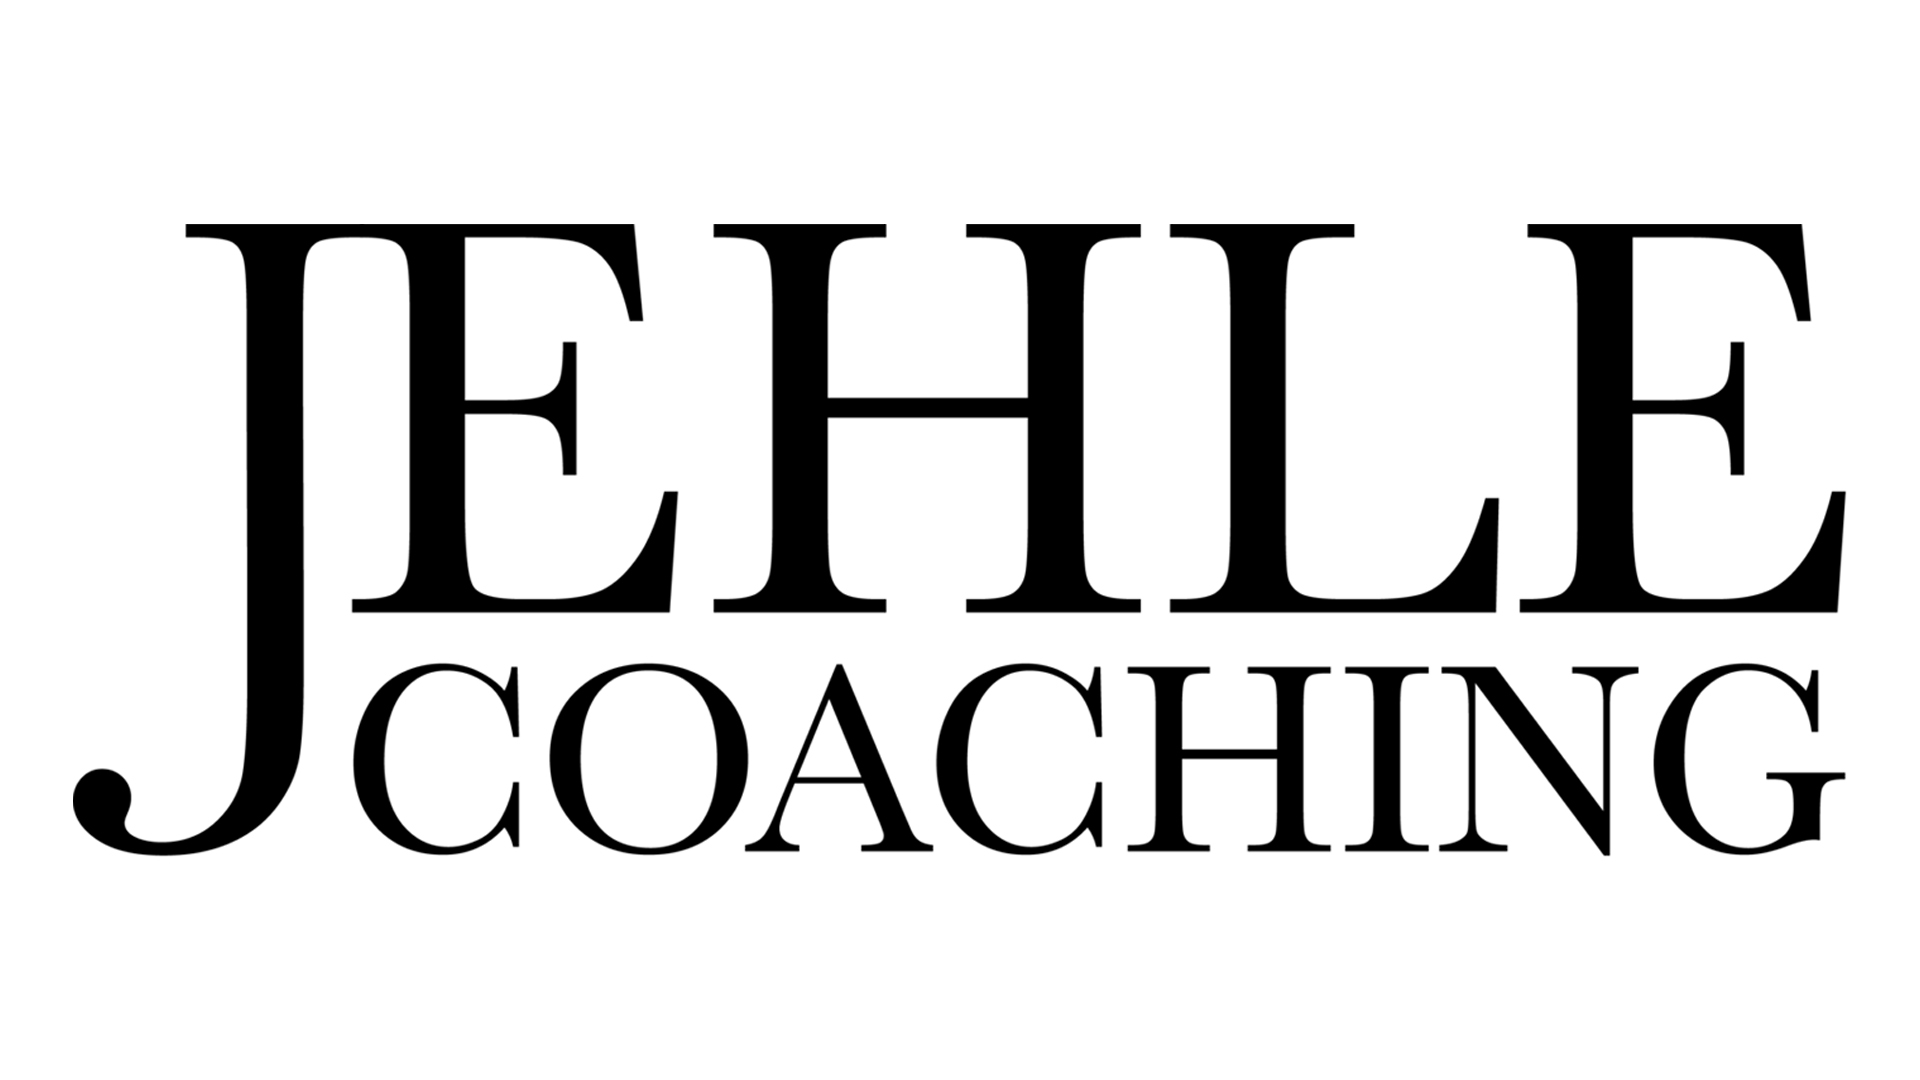 Jehle Coaching - Coaching and Consulting